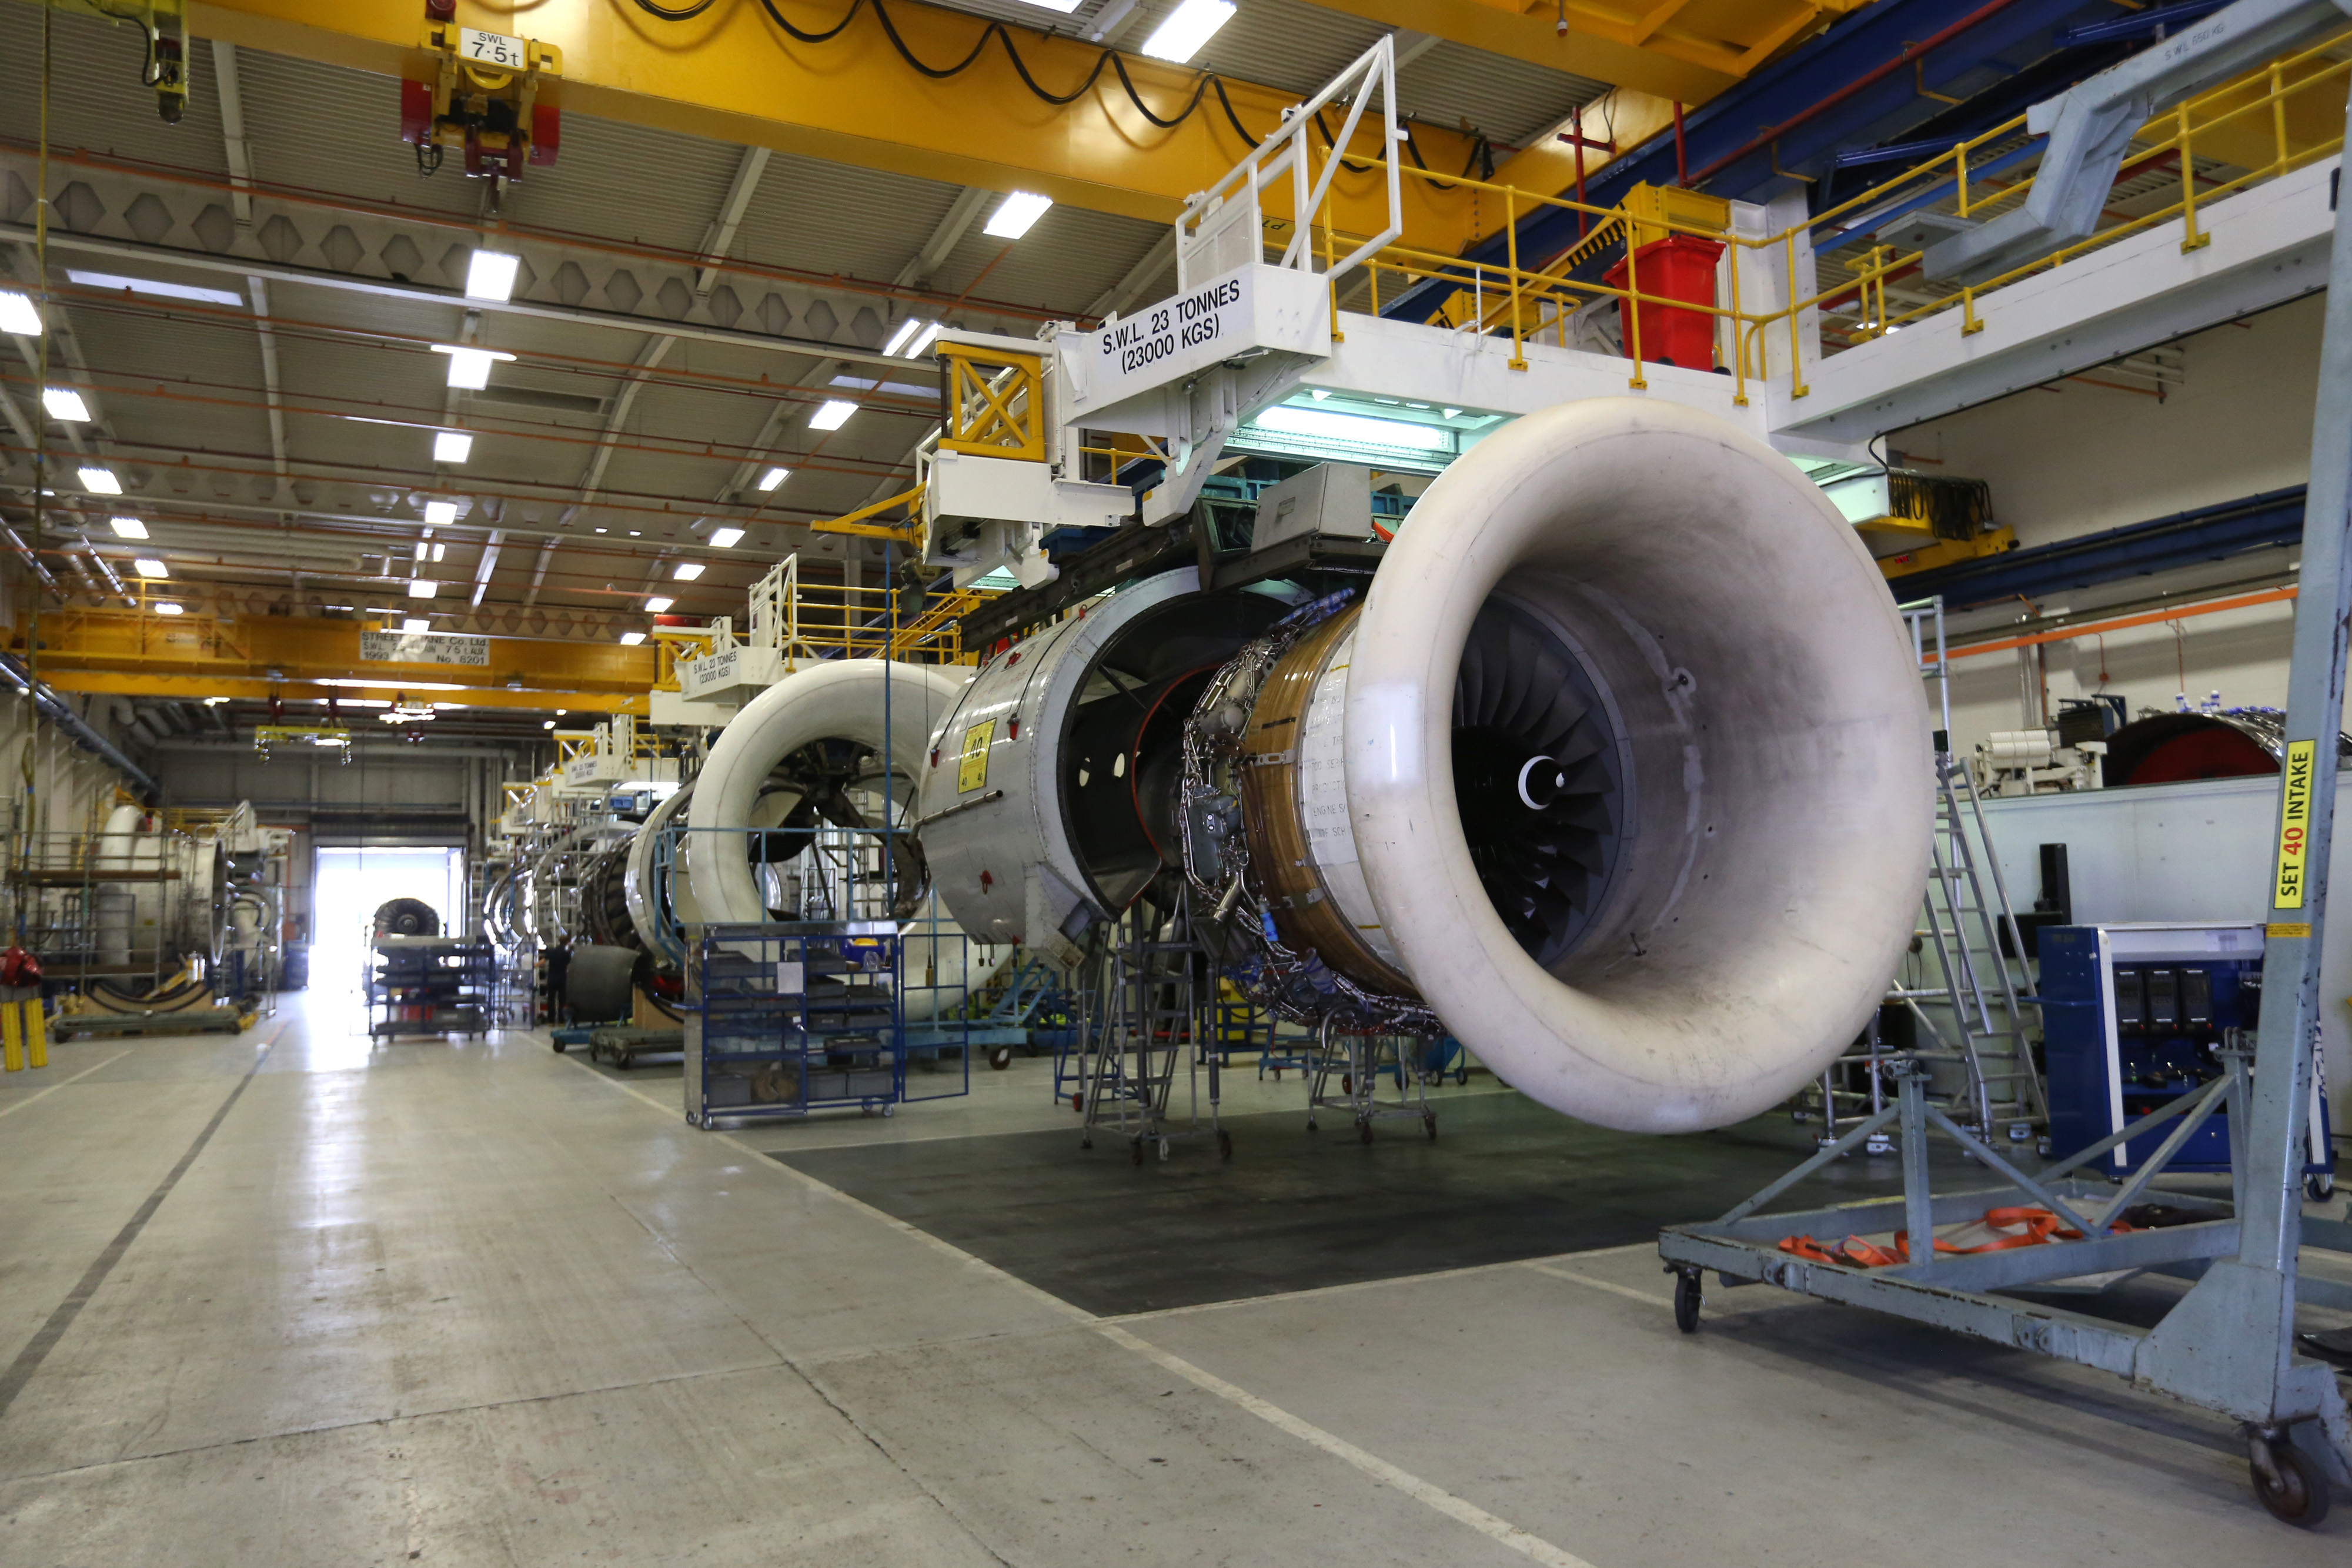 Trent Engines On The Production Assembly Line At The Rolls-Royce Holdings Plc Factory